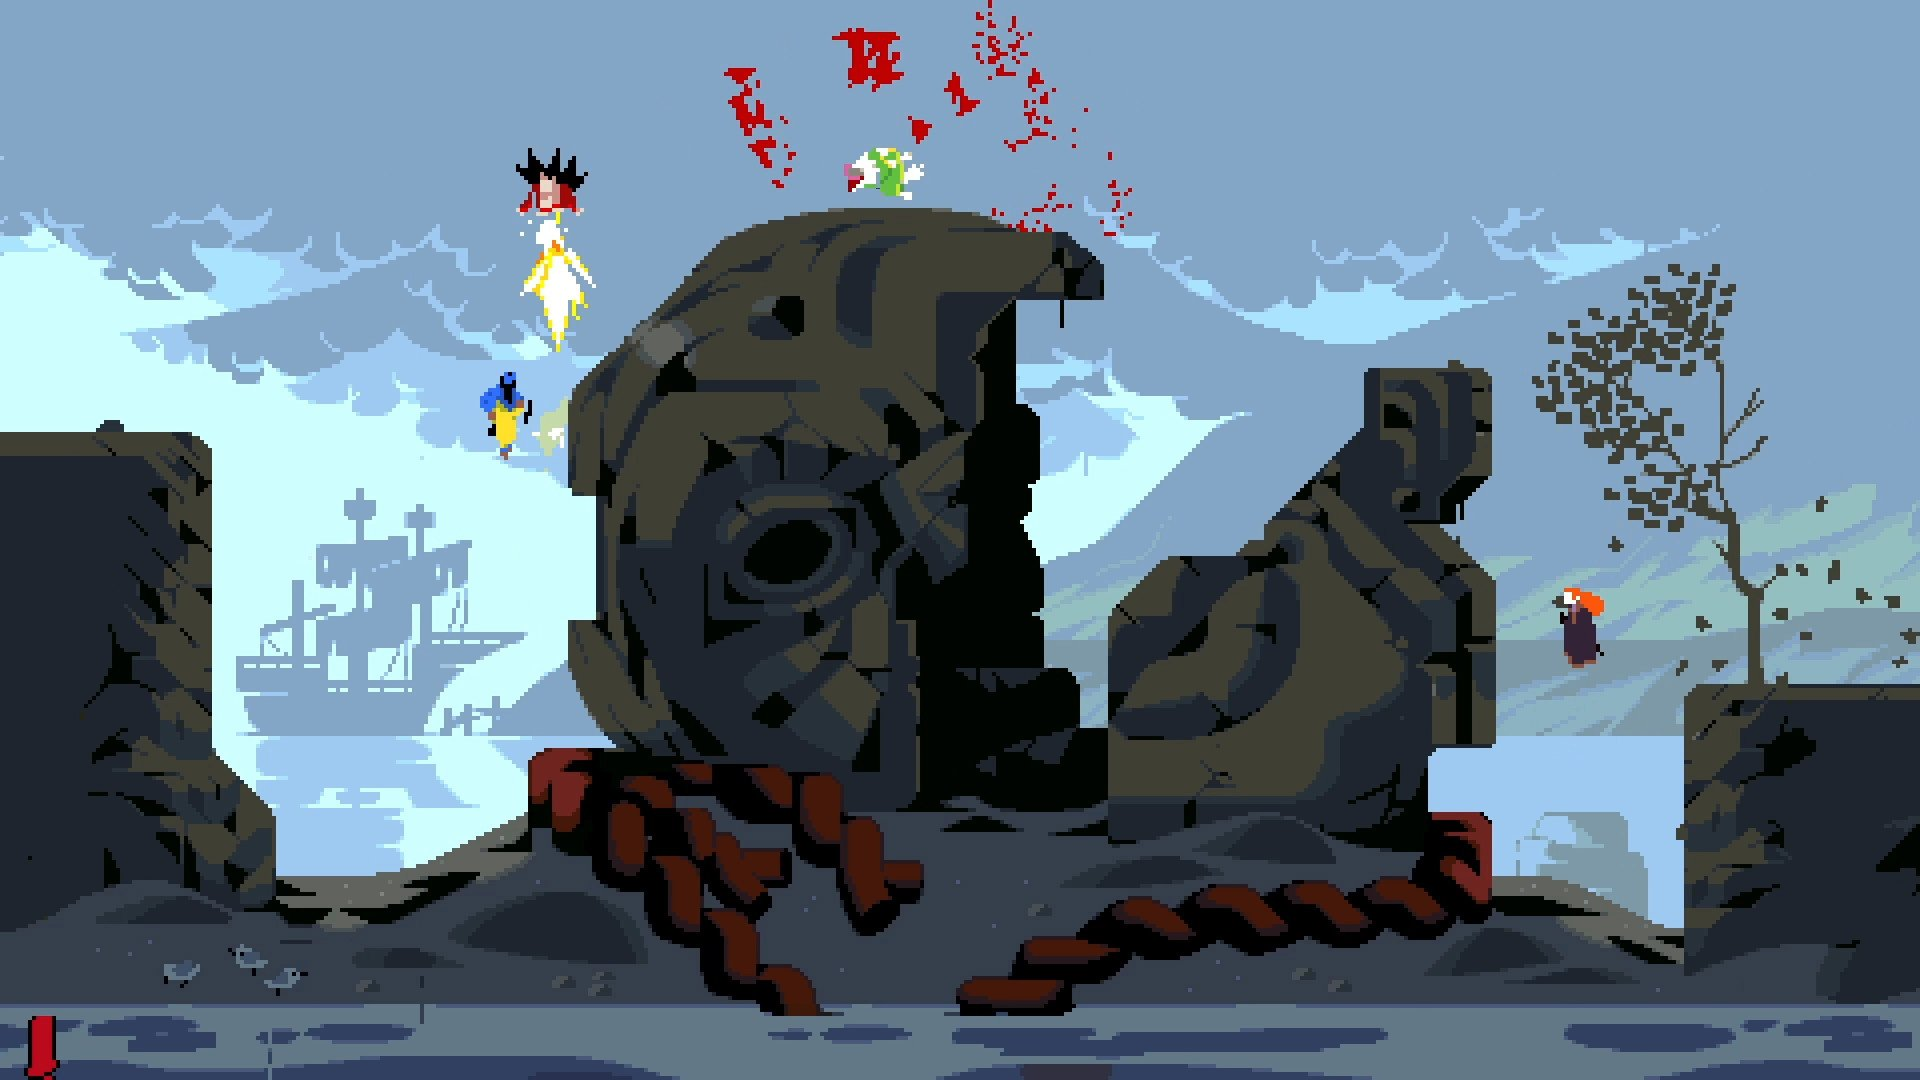 A four-player duel in front of a fallen statue's head.